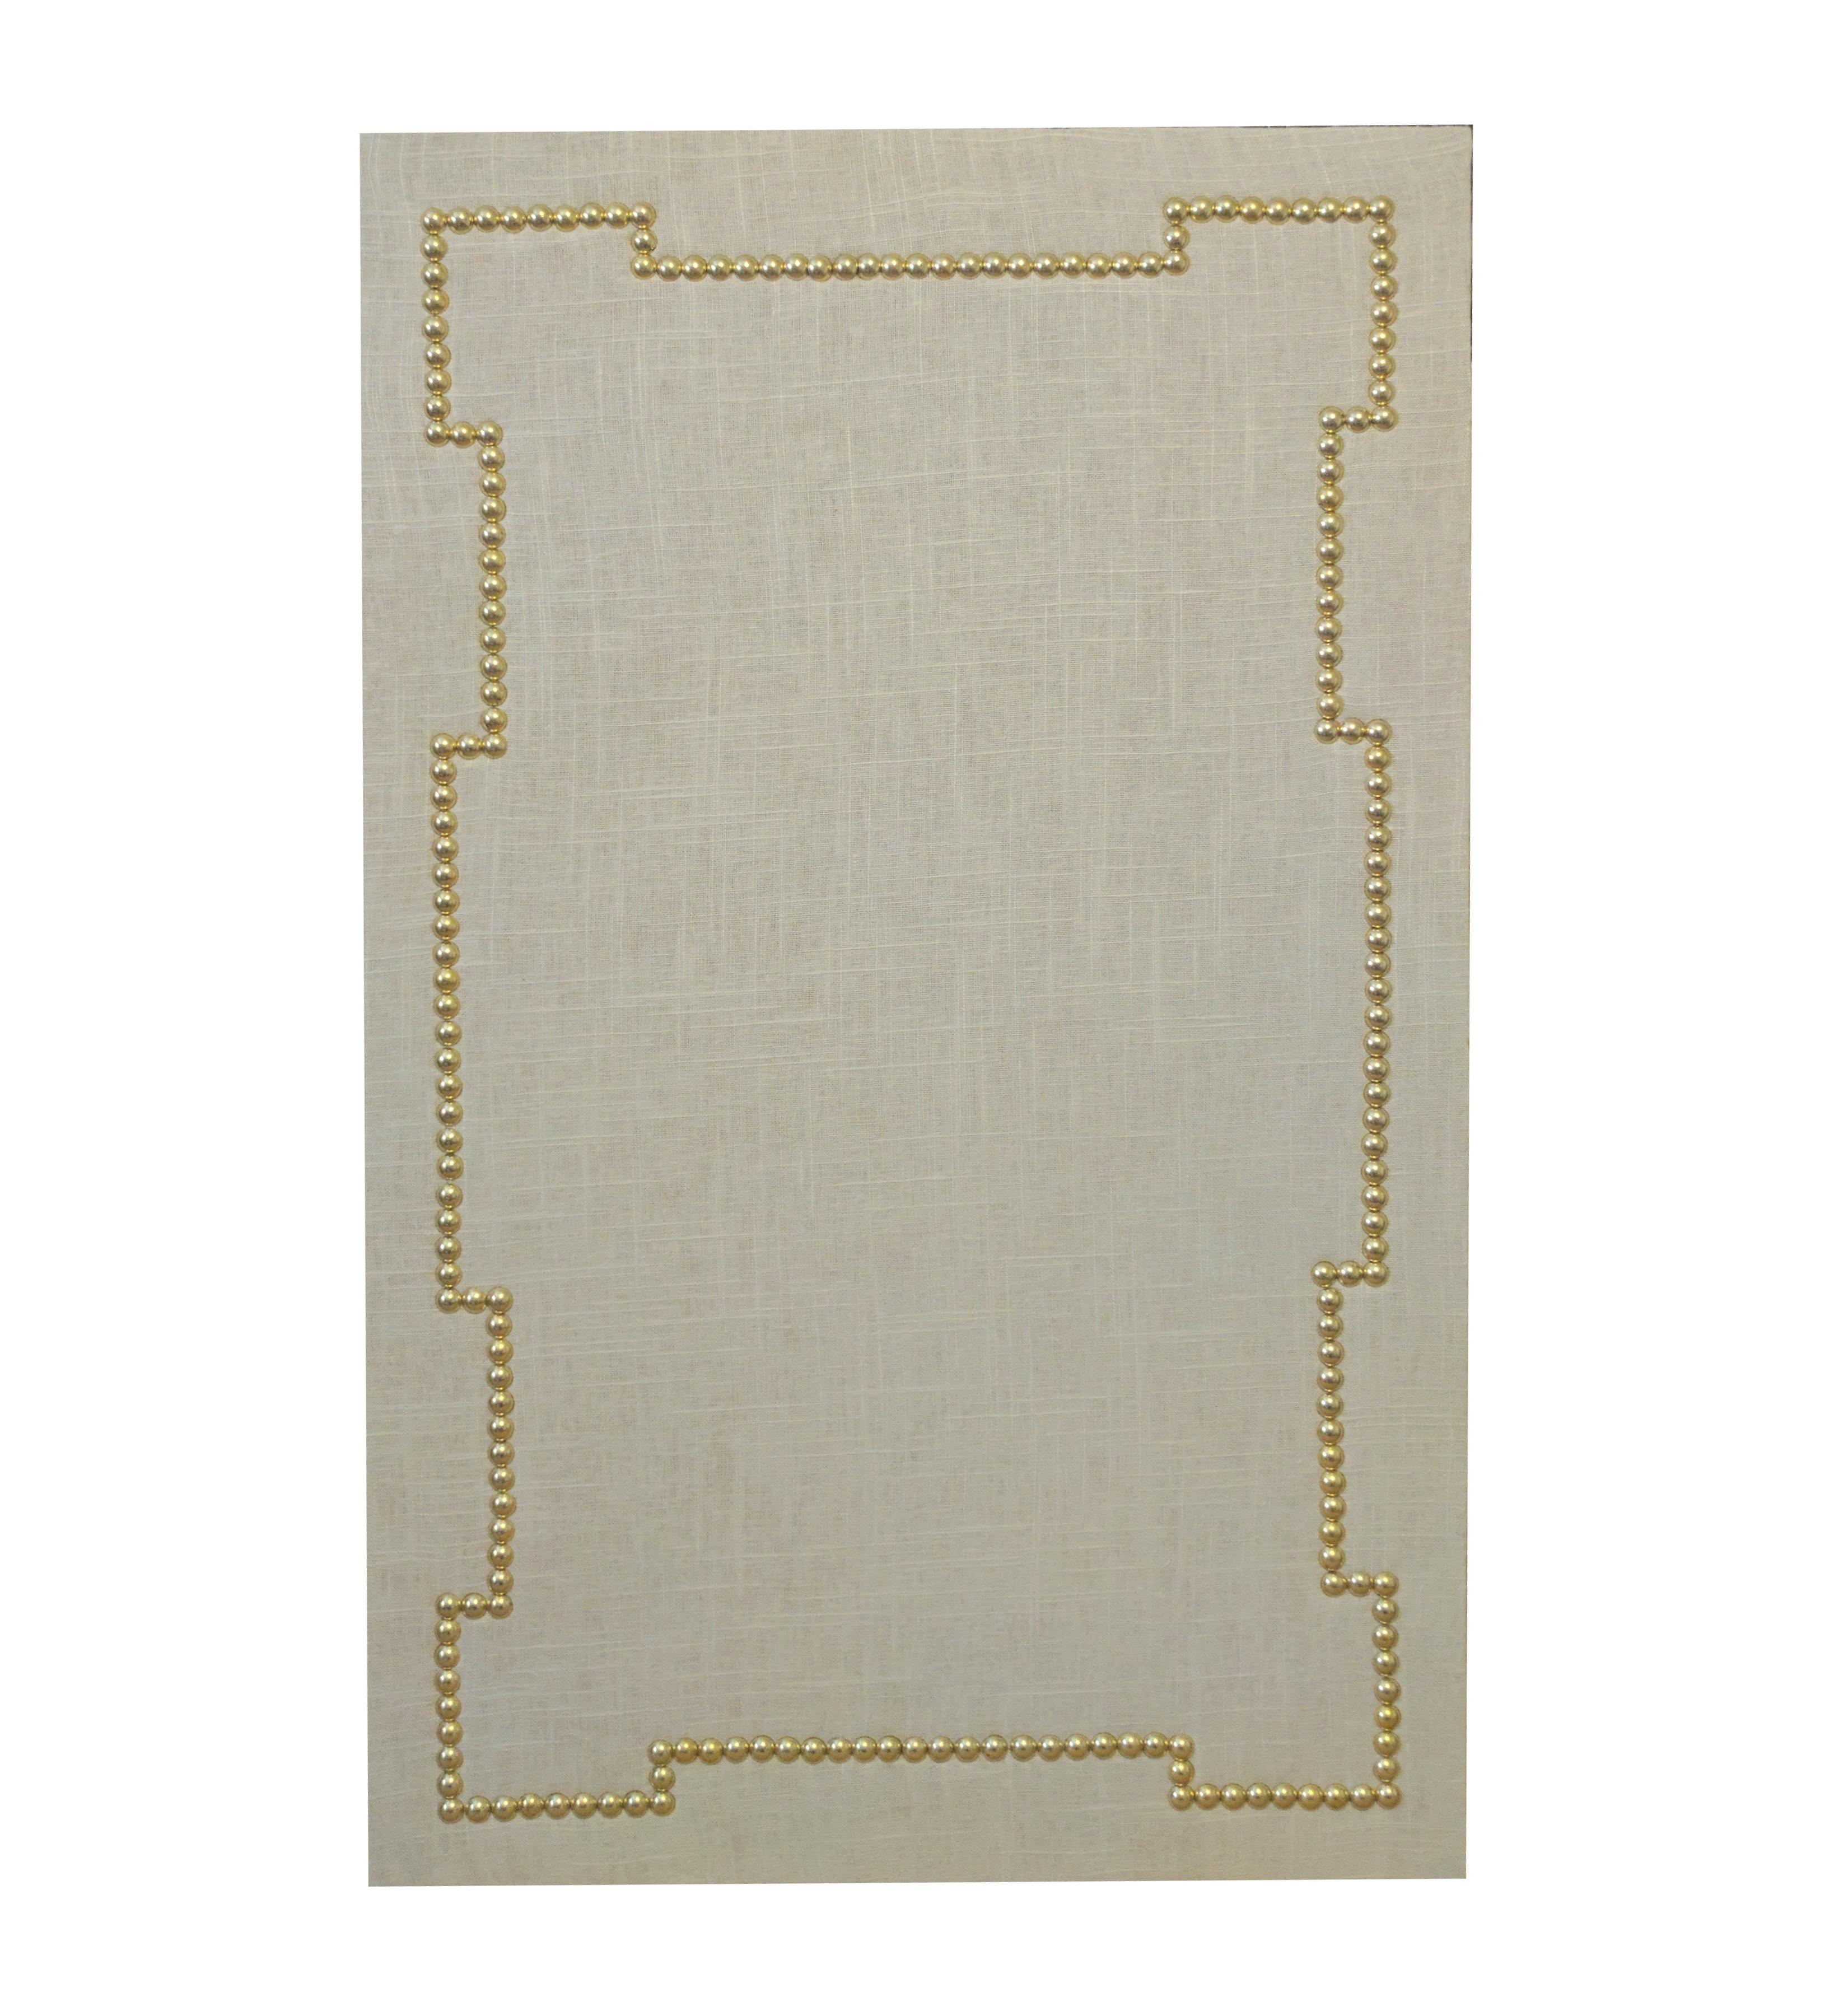 Linen upholstered cork board with nailhead trim chairish for Linen cork board